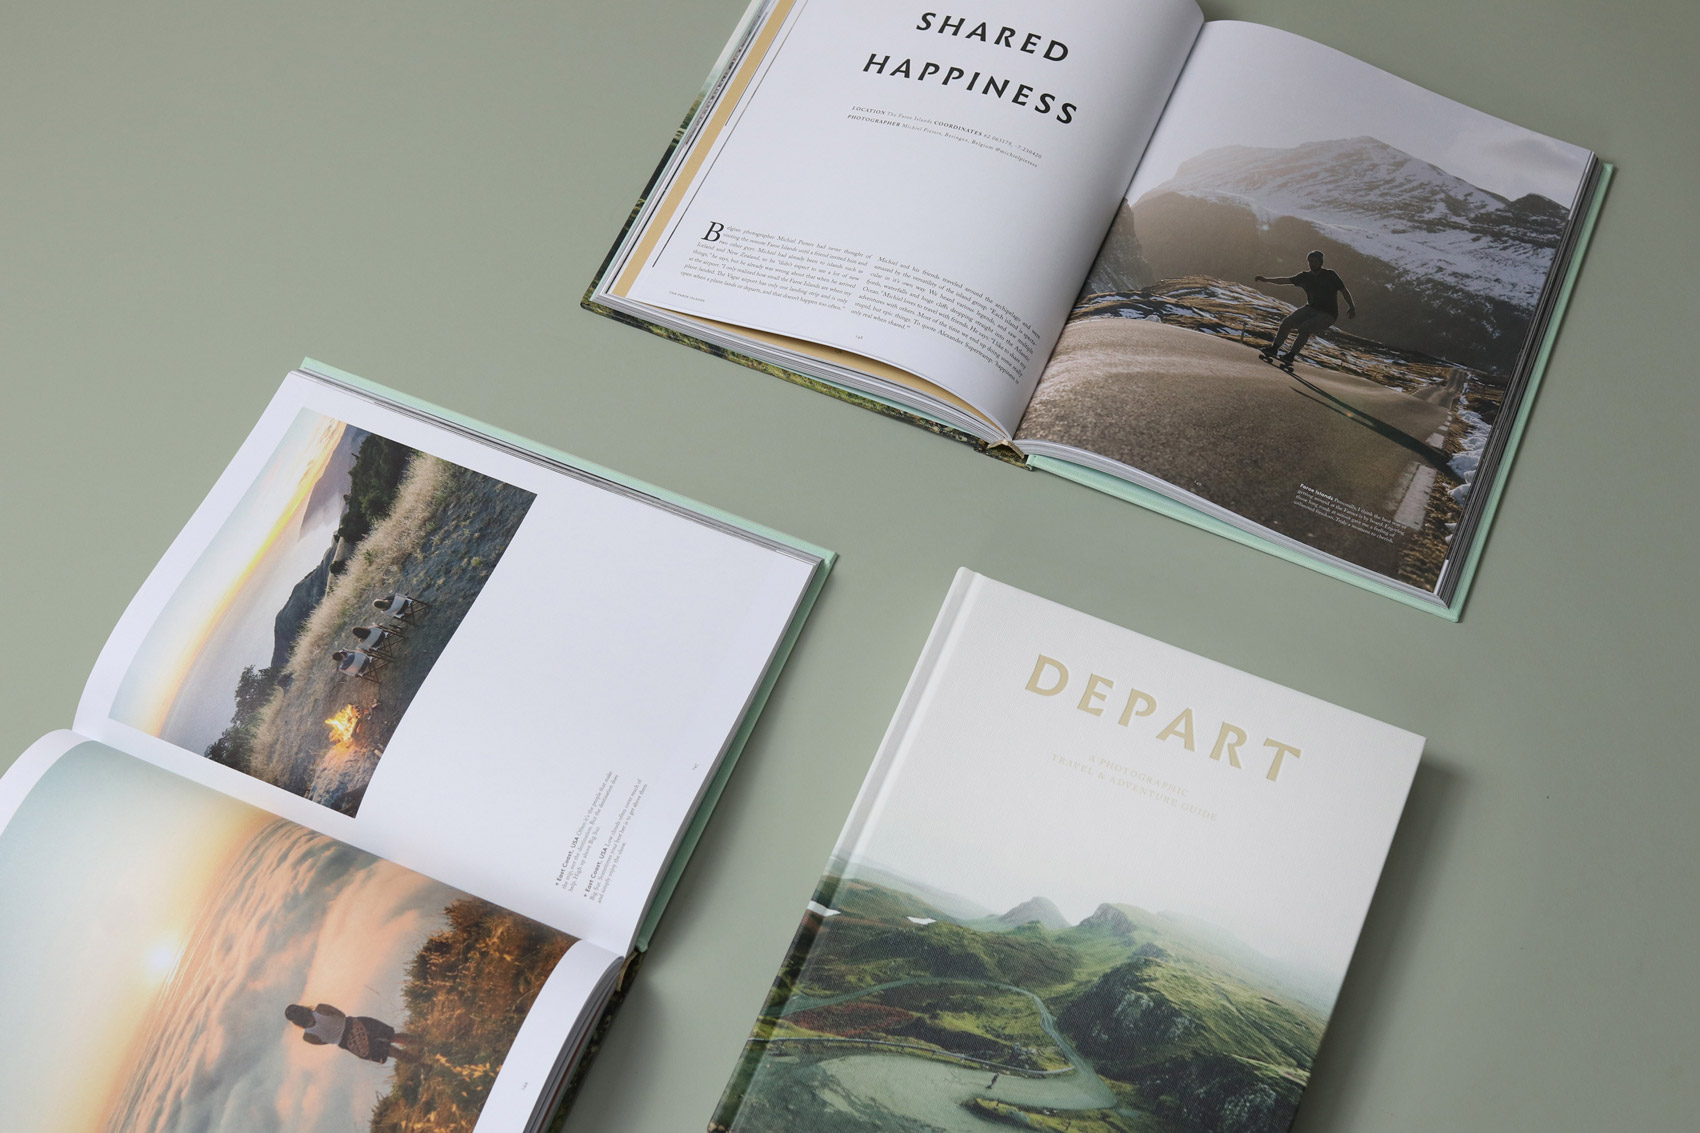 Travel & photography book